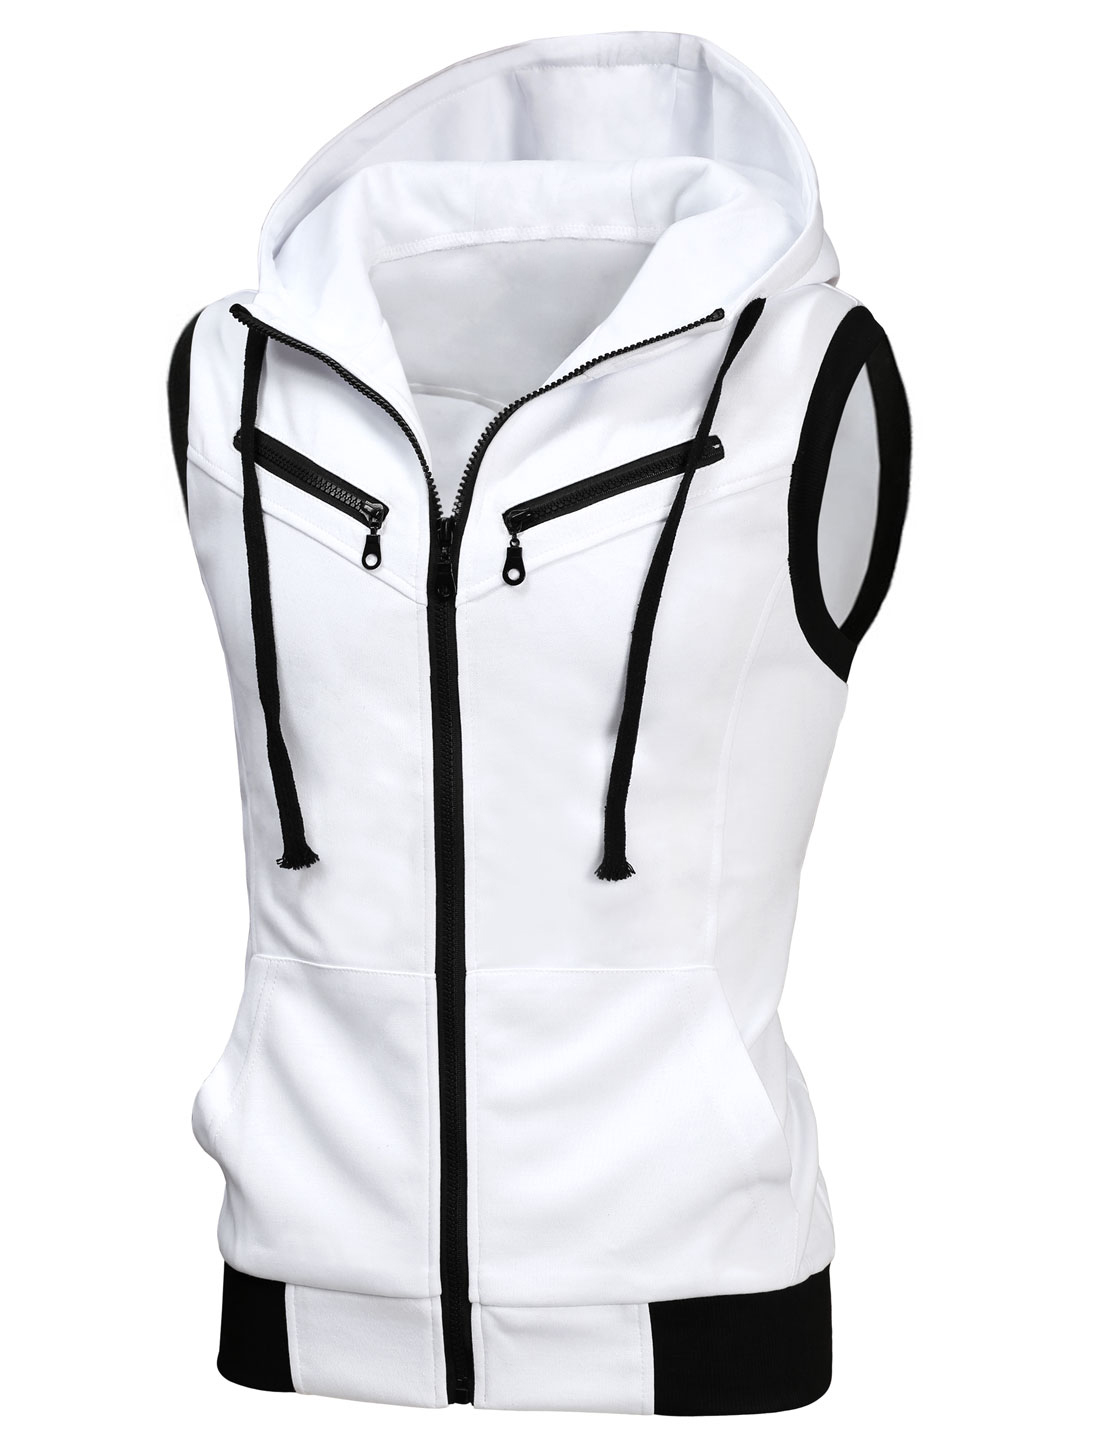 Men Full Zipper Two Pockets Drawstring Hooded Vest White S